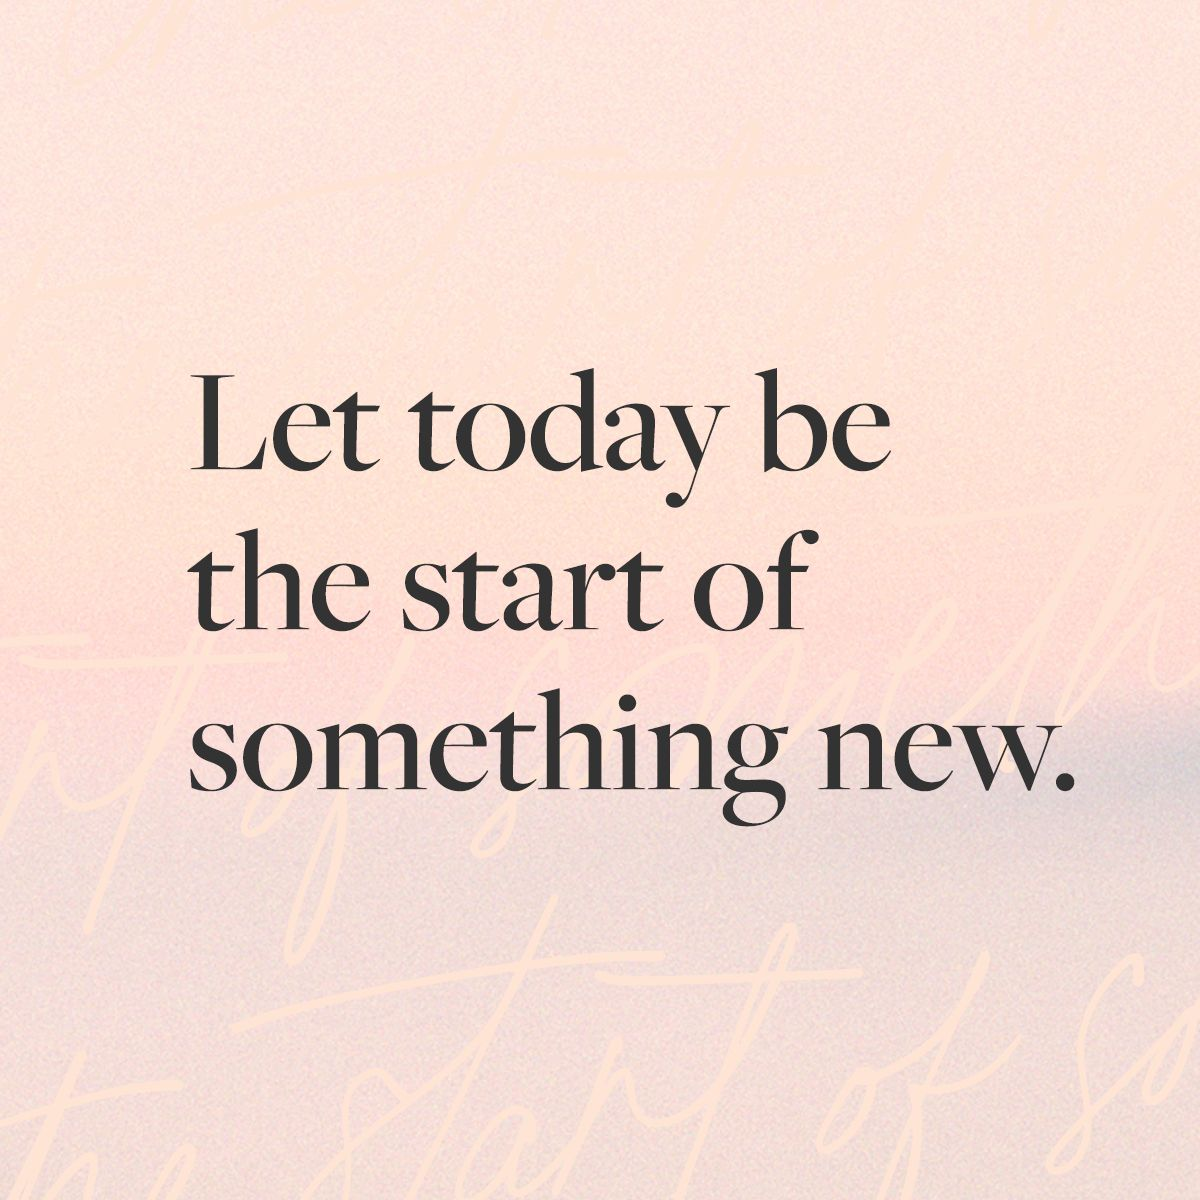 Let today be the start of something new  design quote inspiration